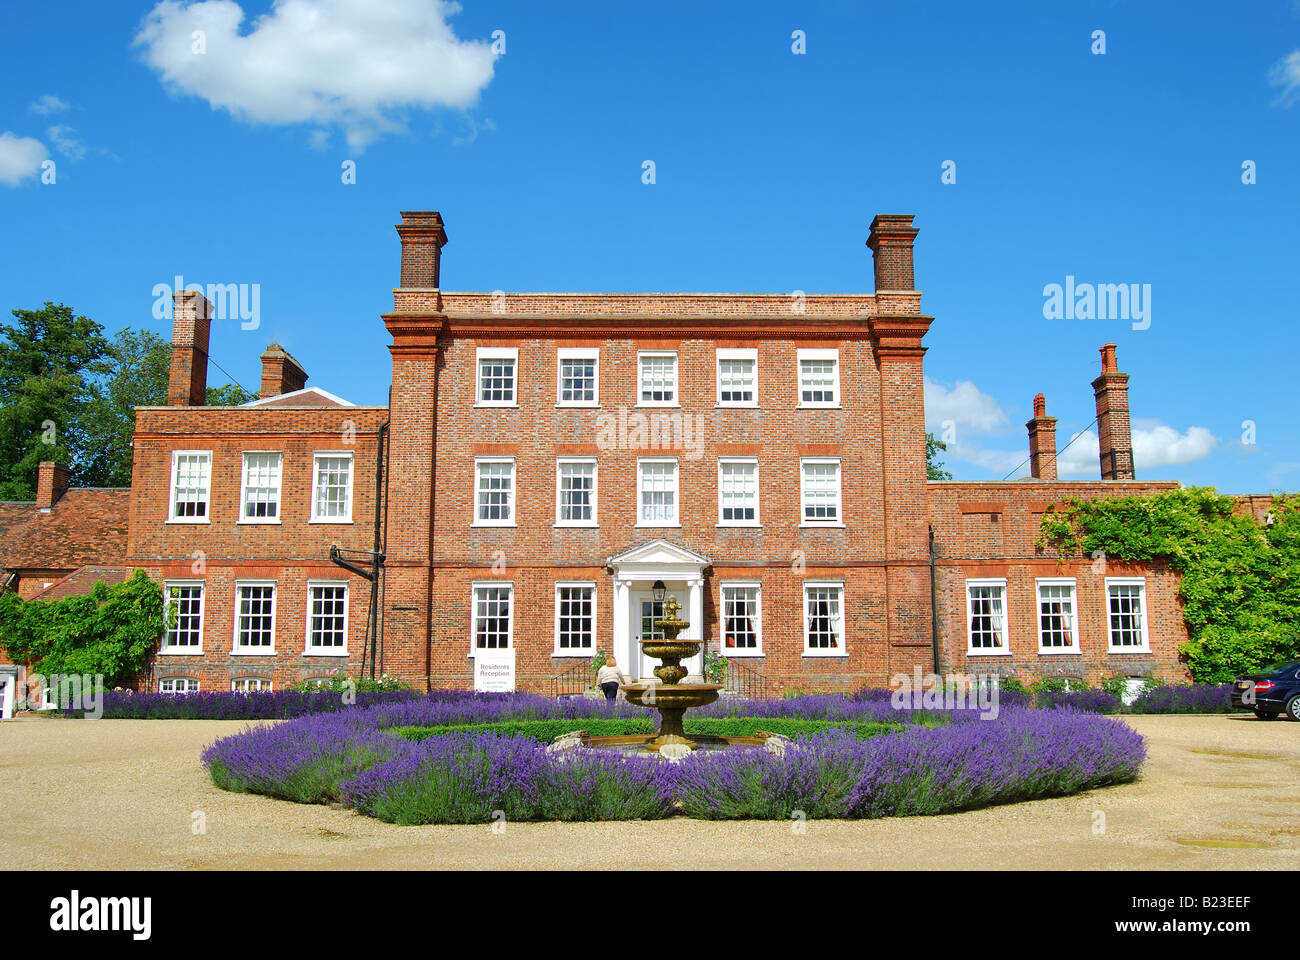 Champneys Stock Photos Amp Champneys Stock Images Alamy